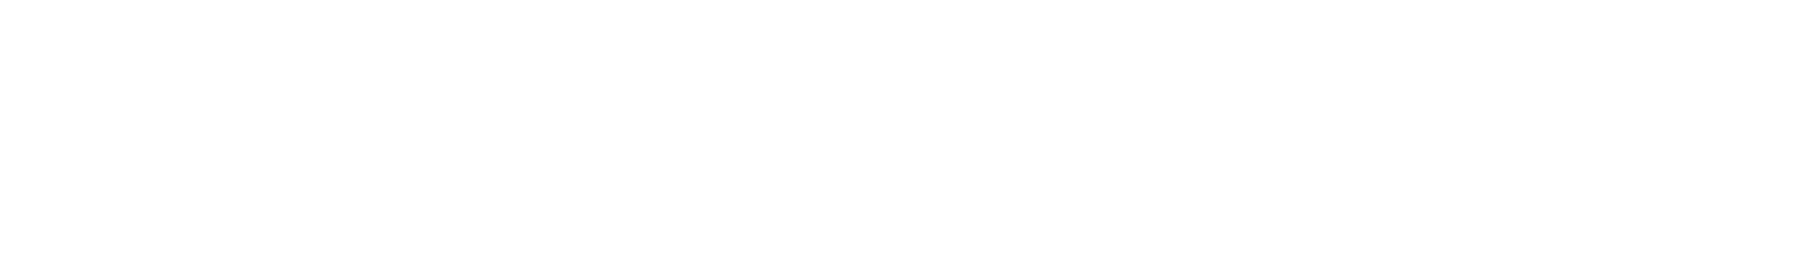 65191 frustrated fruit wav